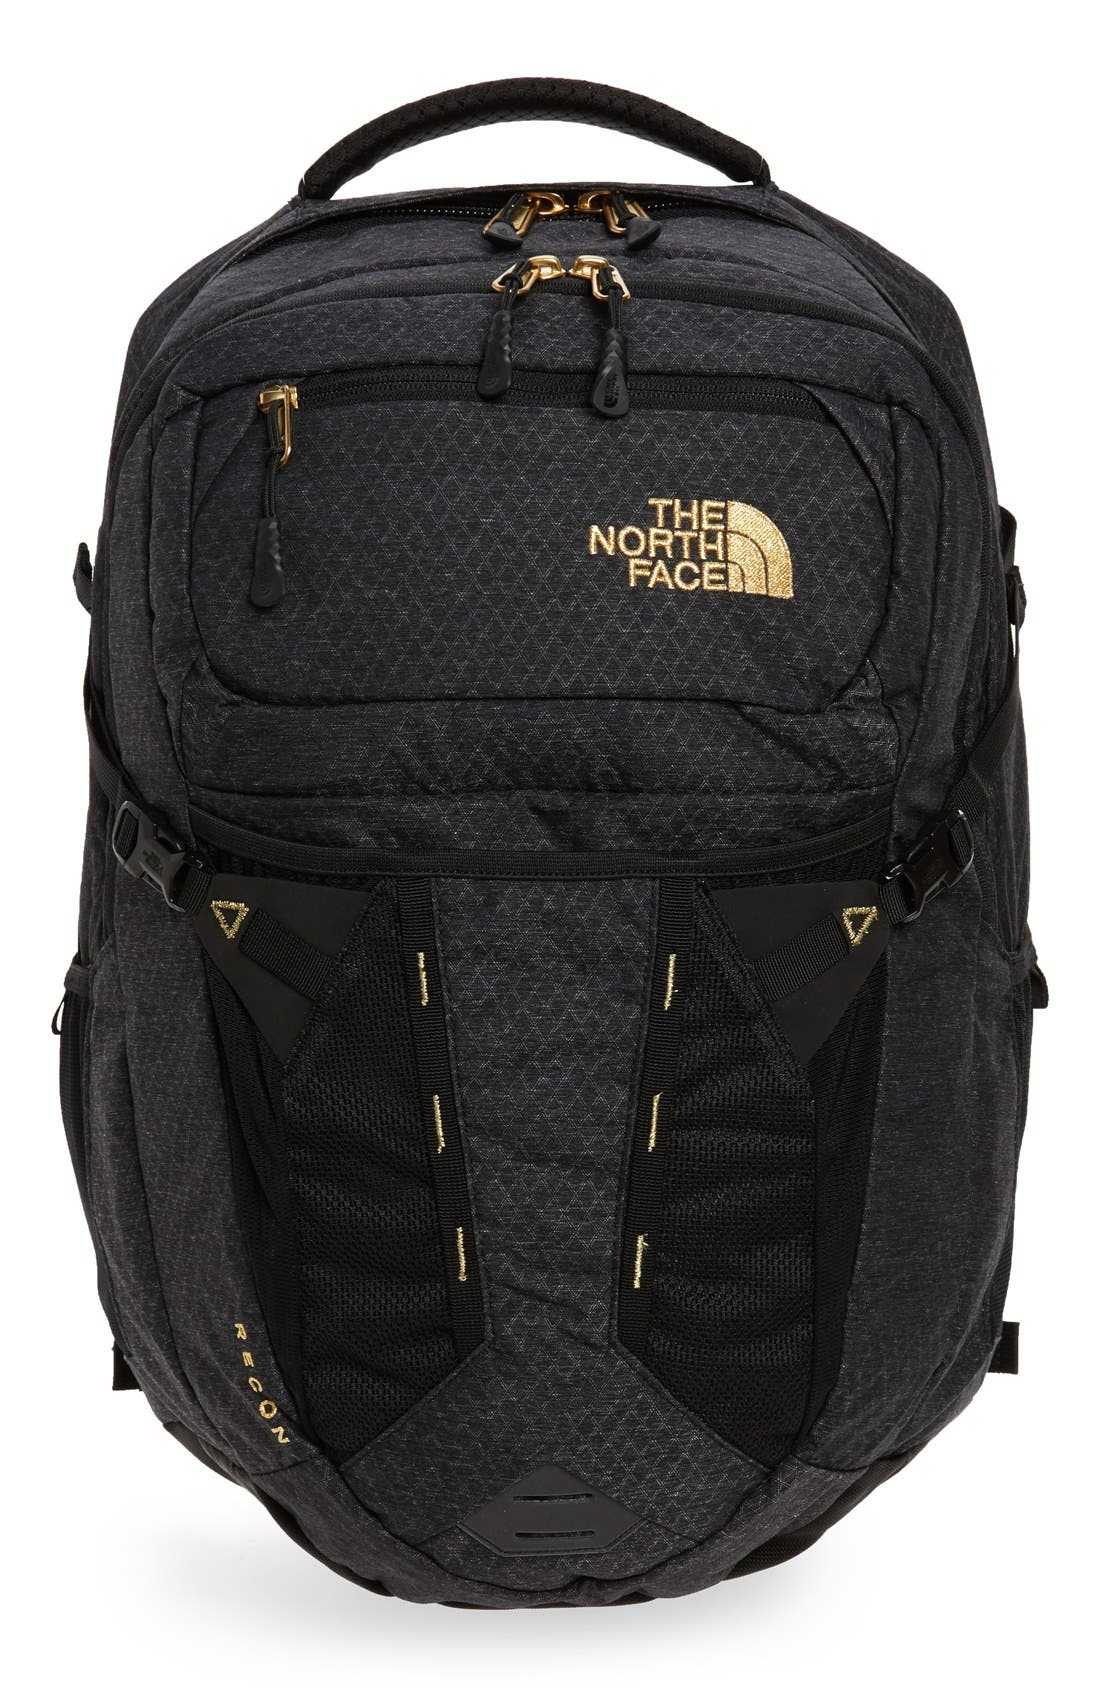 Alternate Image 1 Selected - The North Face 'Recon' Backpack